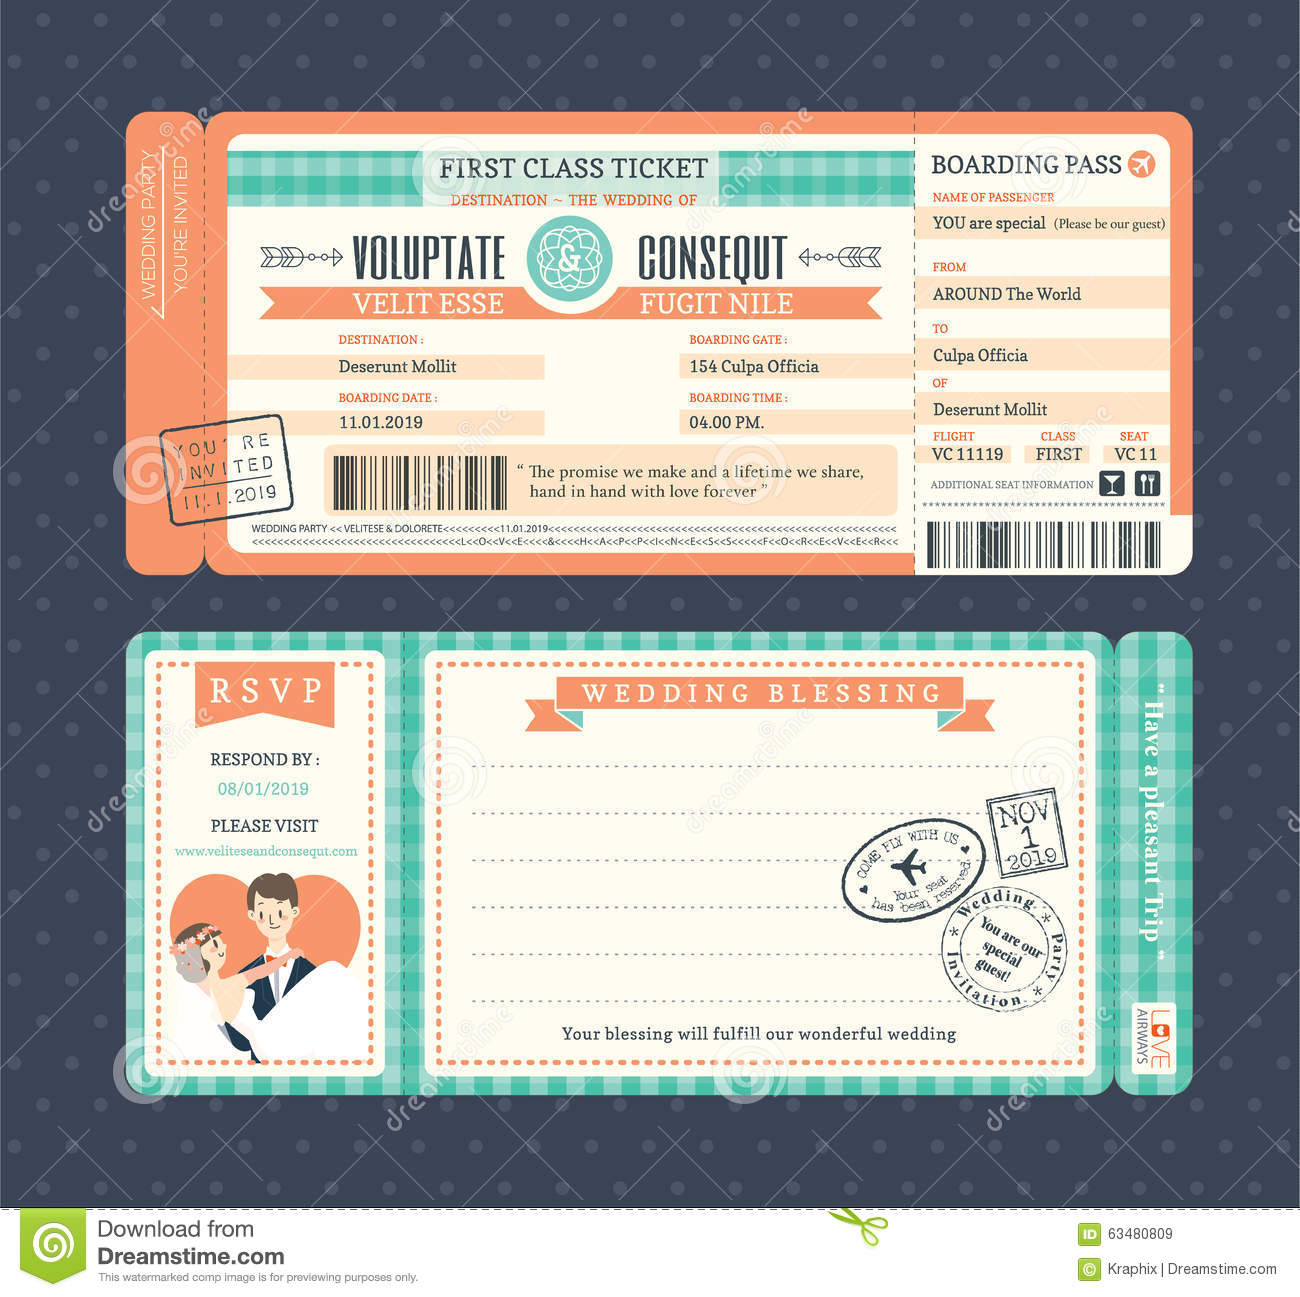 Vintage Boarding Pass Template